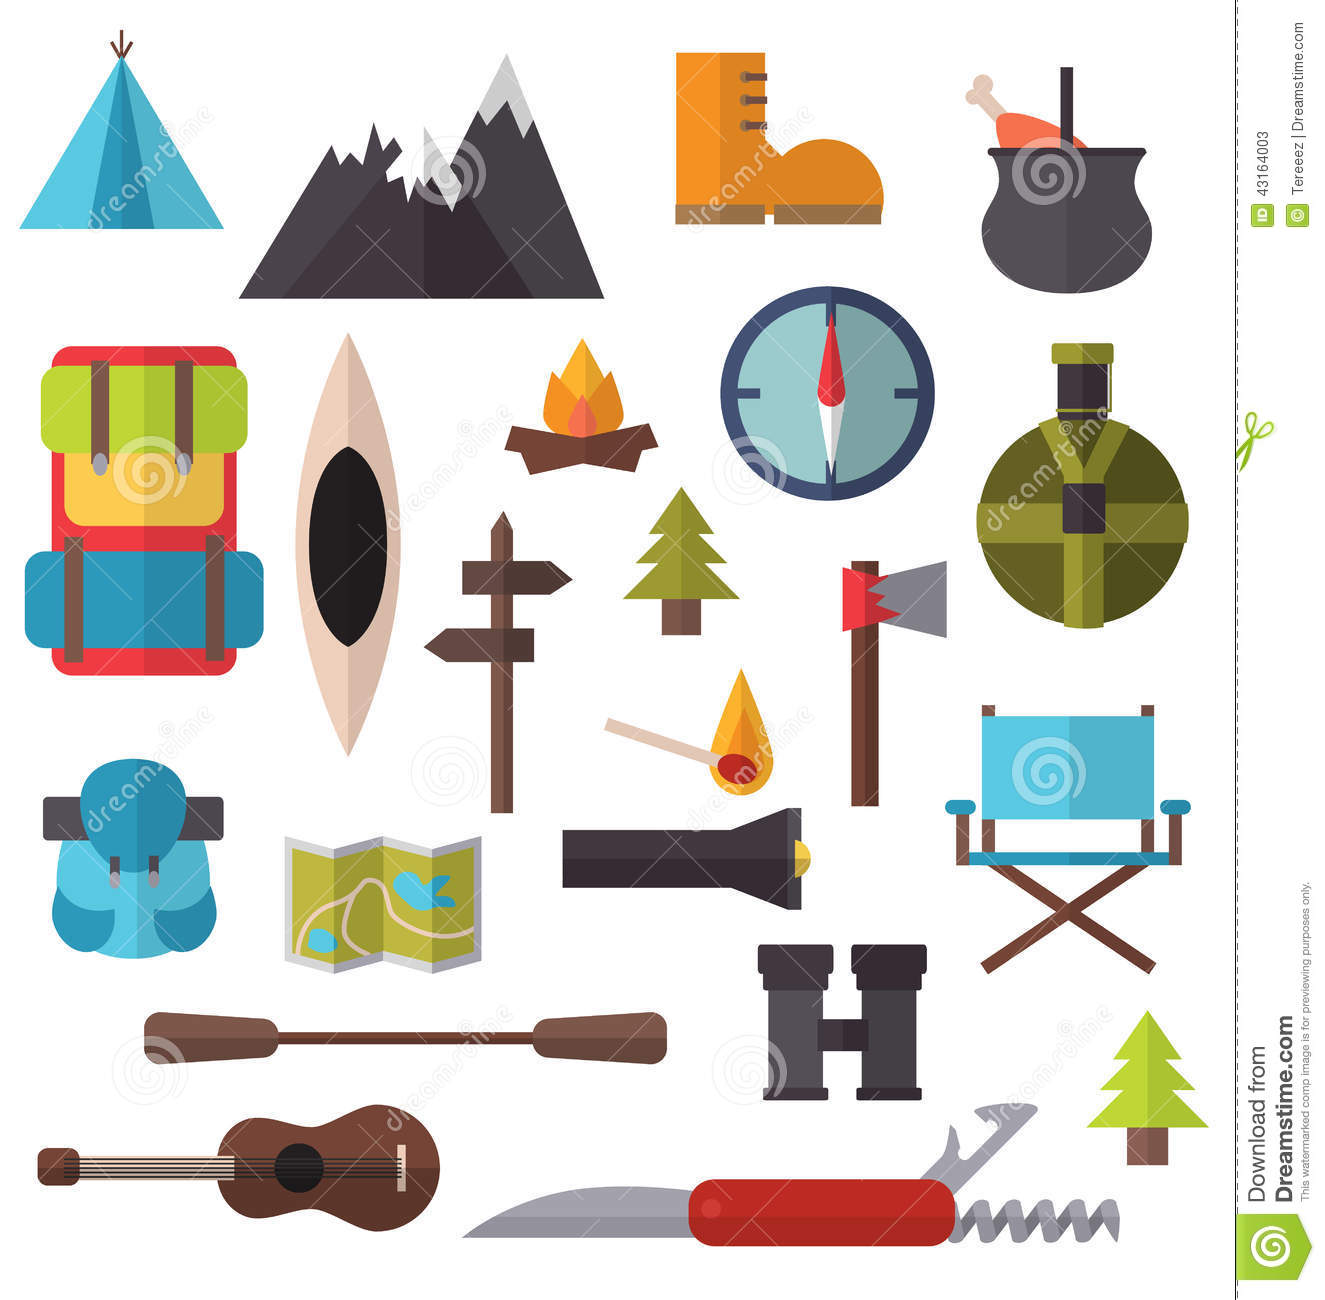 Hiking clothes clipart - Clipground